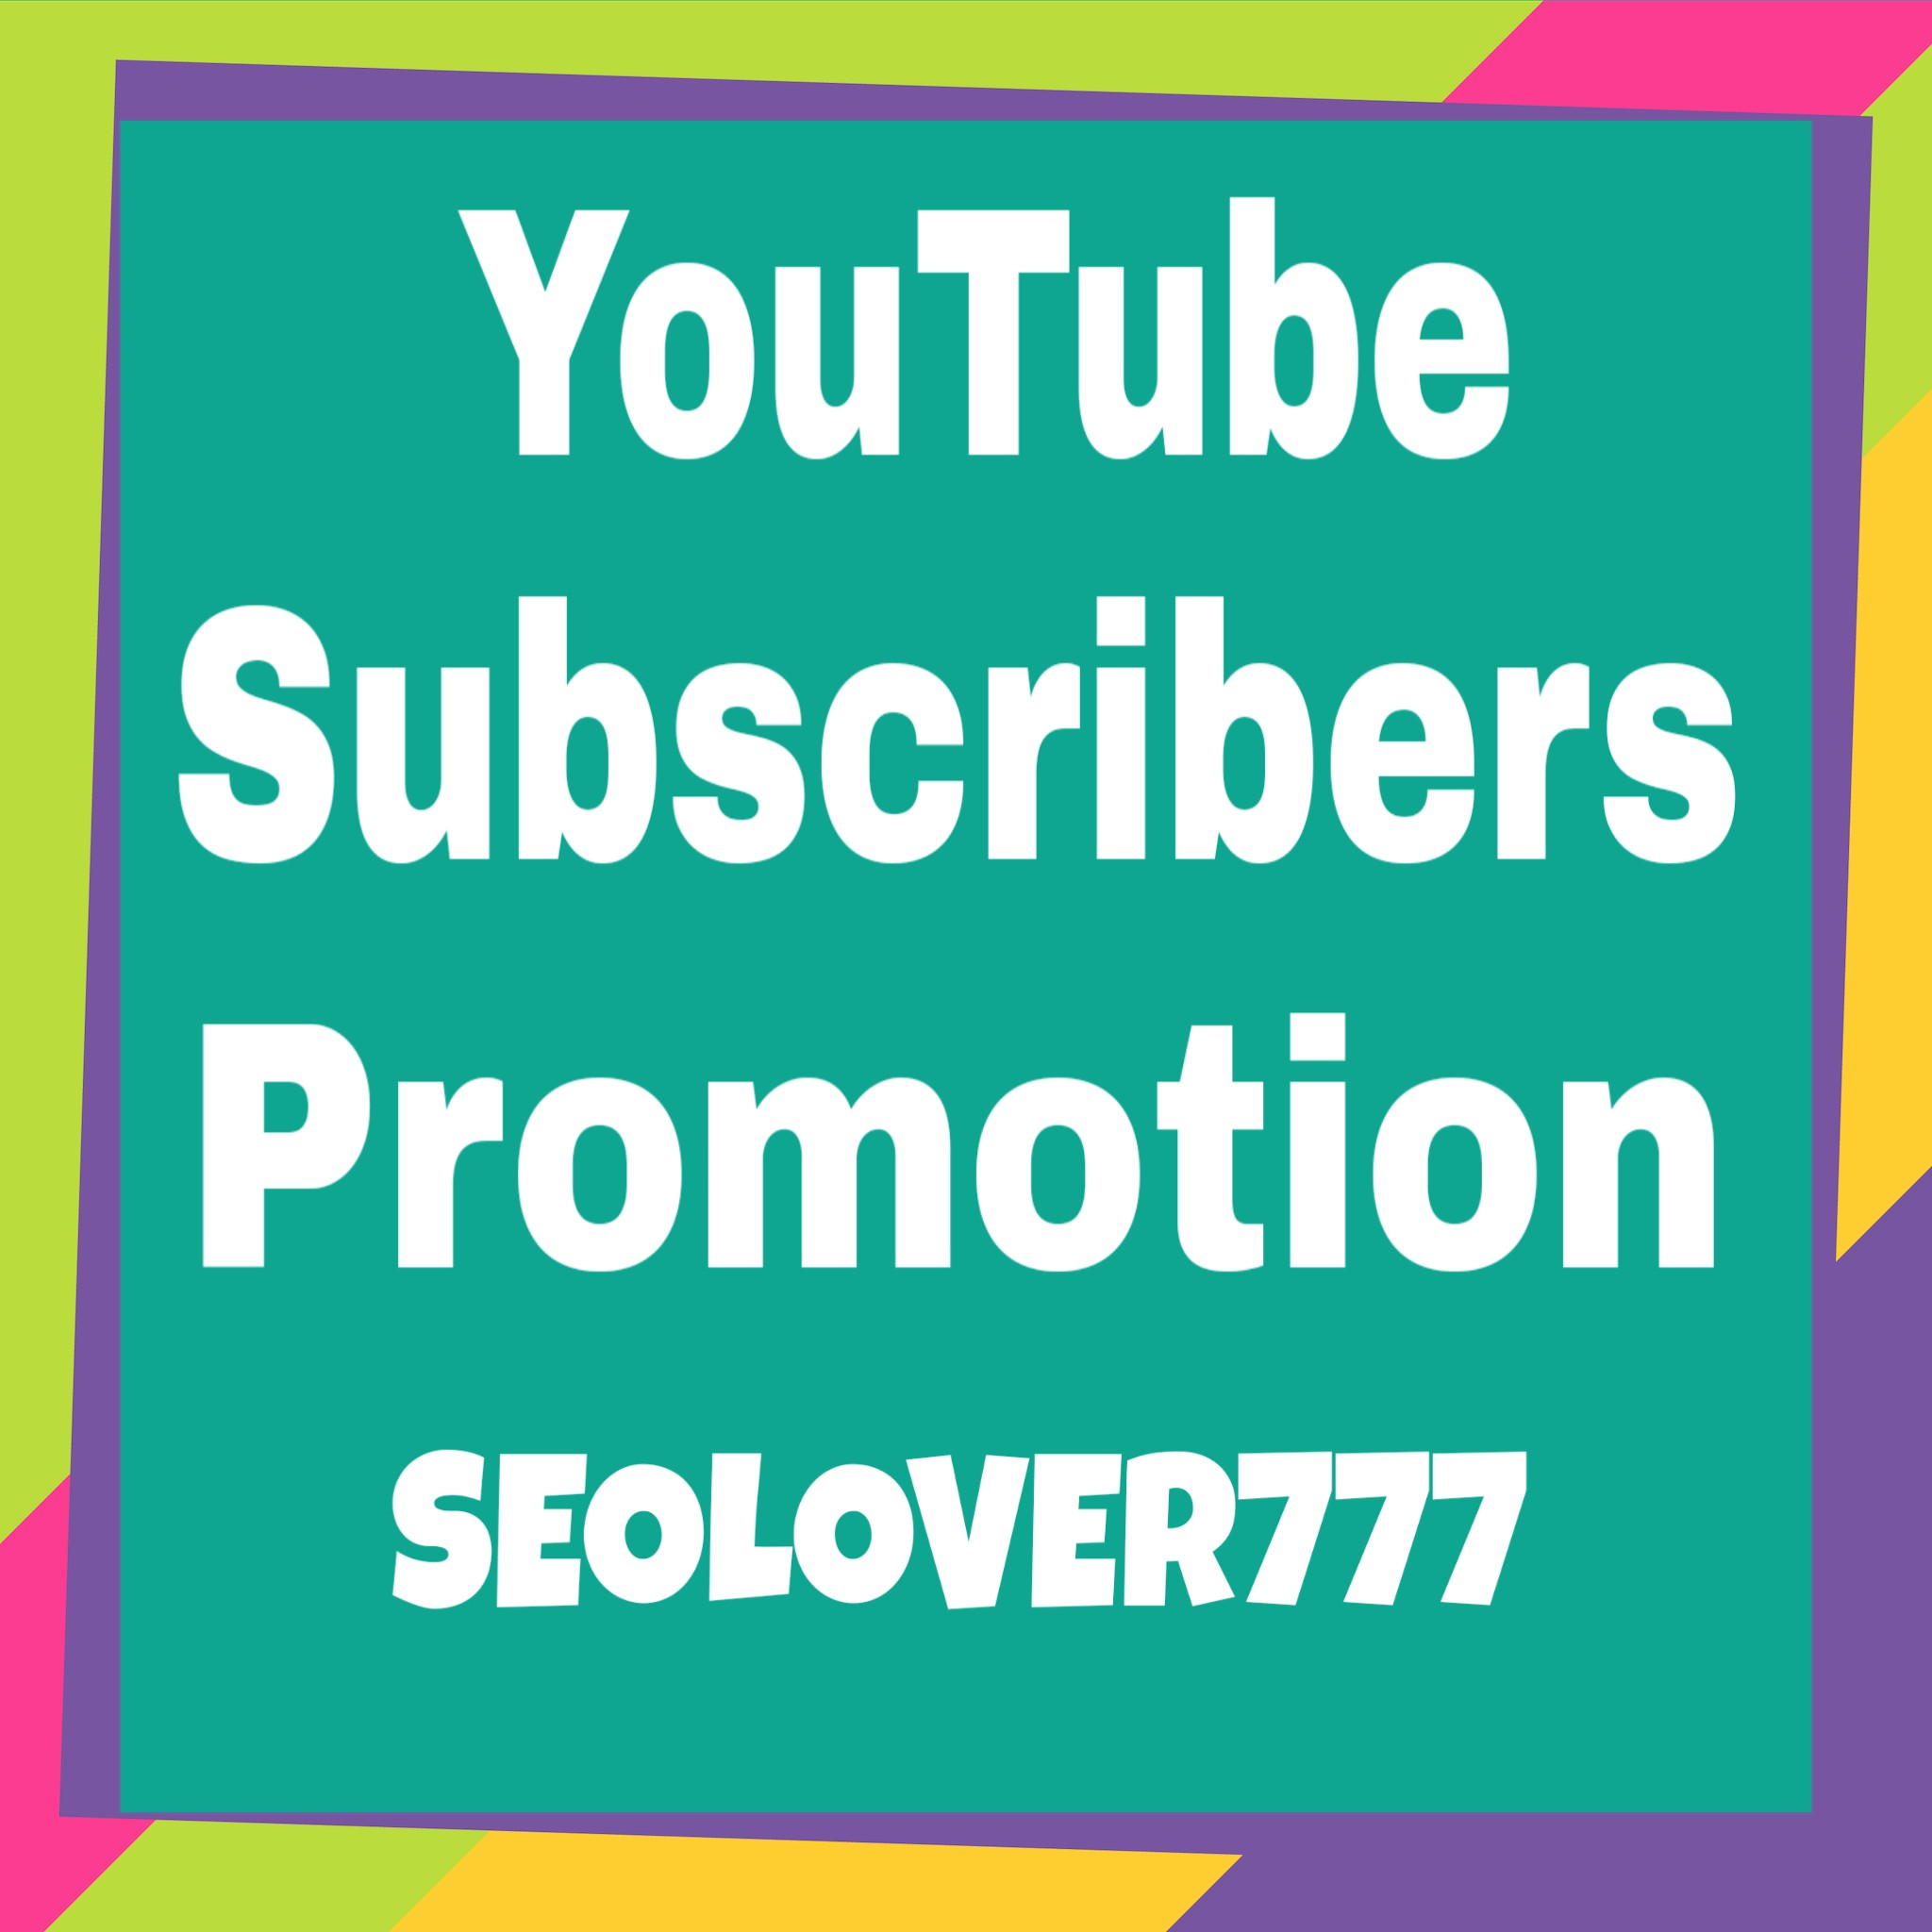 YouTube Promotion via real users only